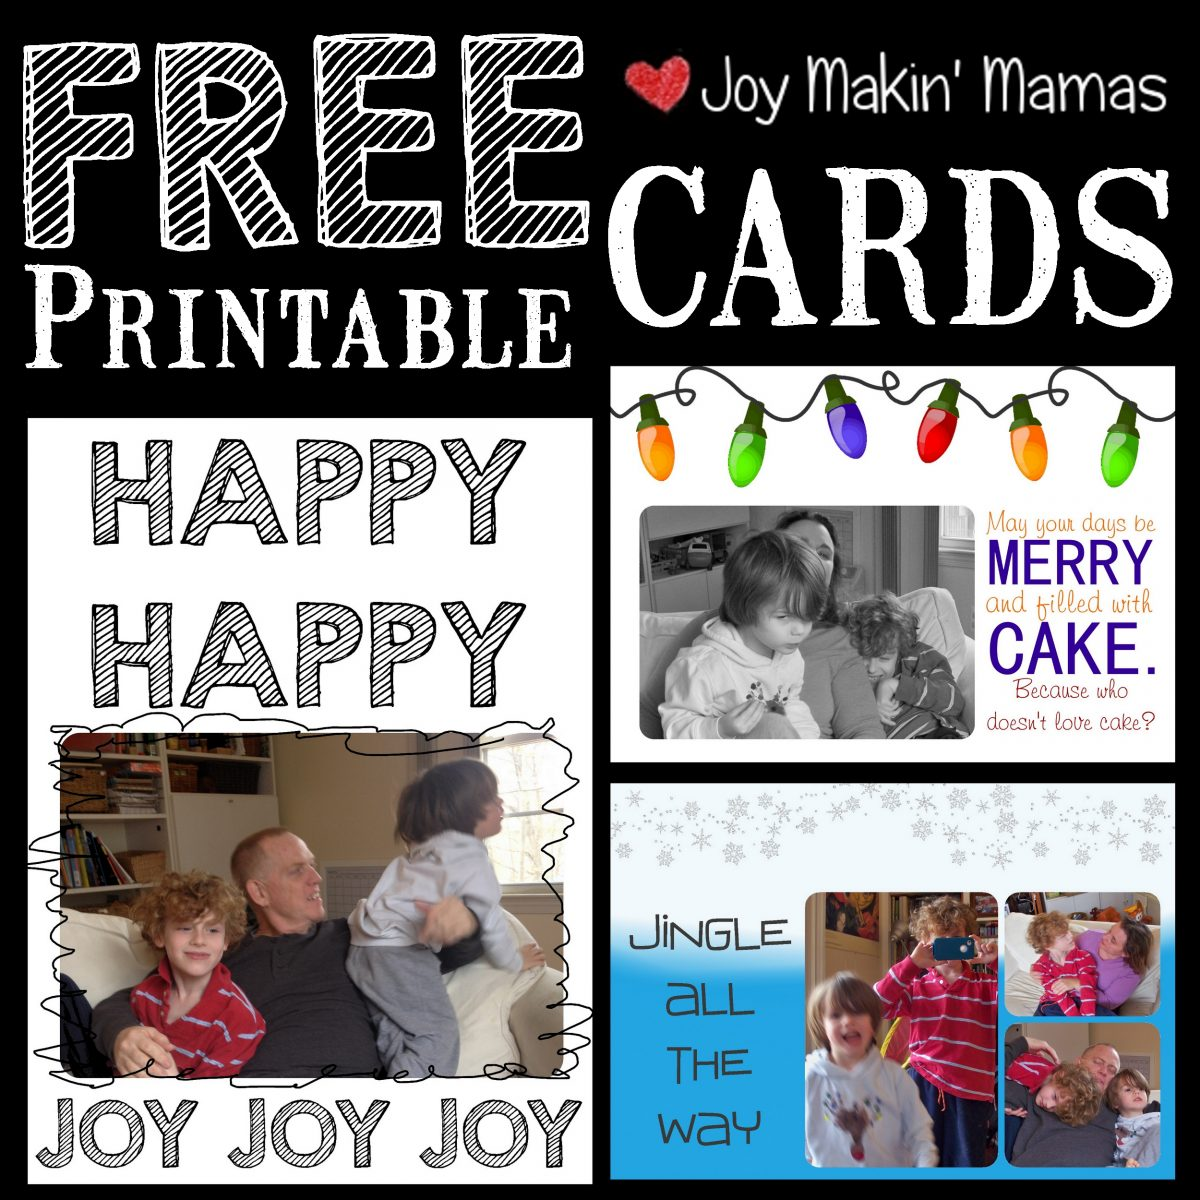 free printable holiday card templates Joy Makin' Mamas 2014